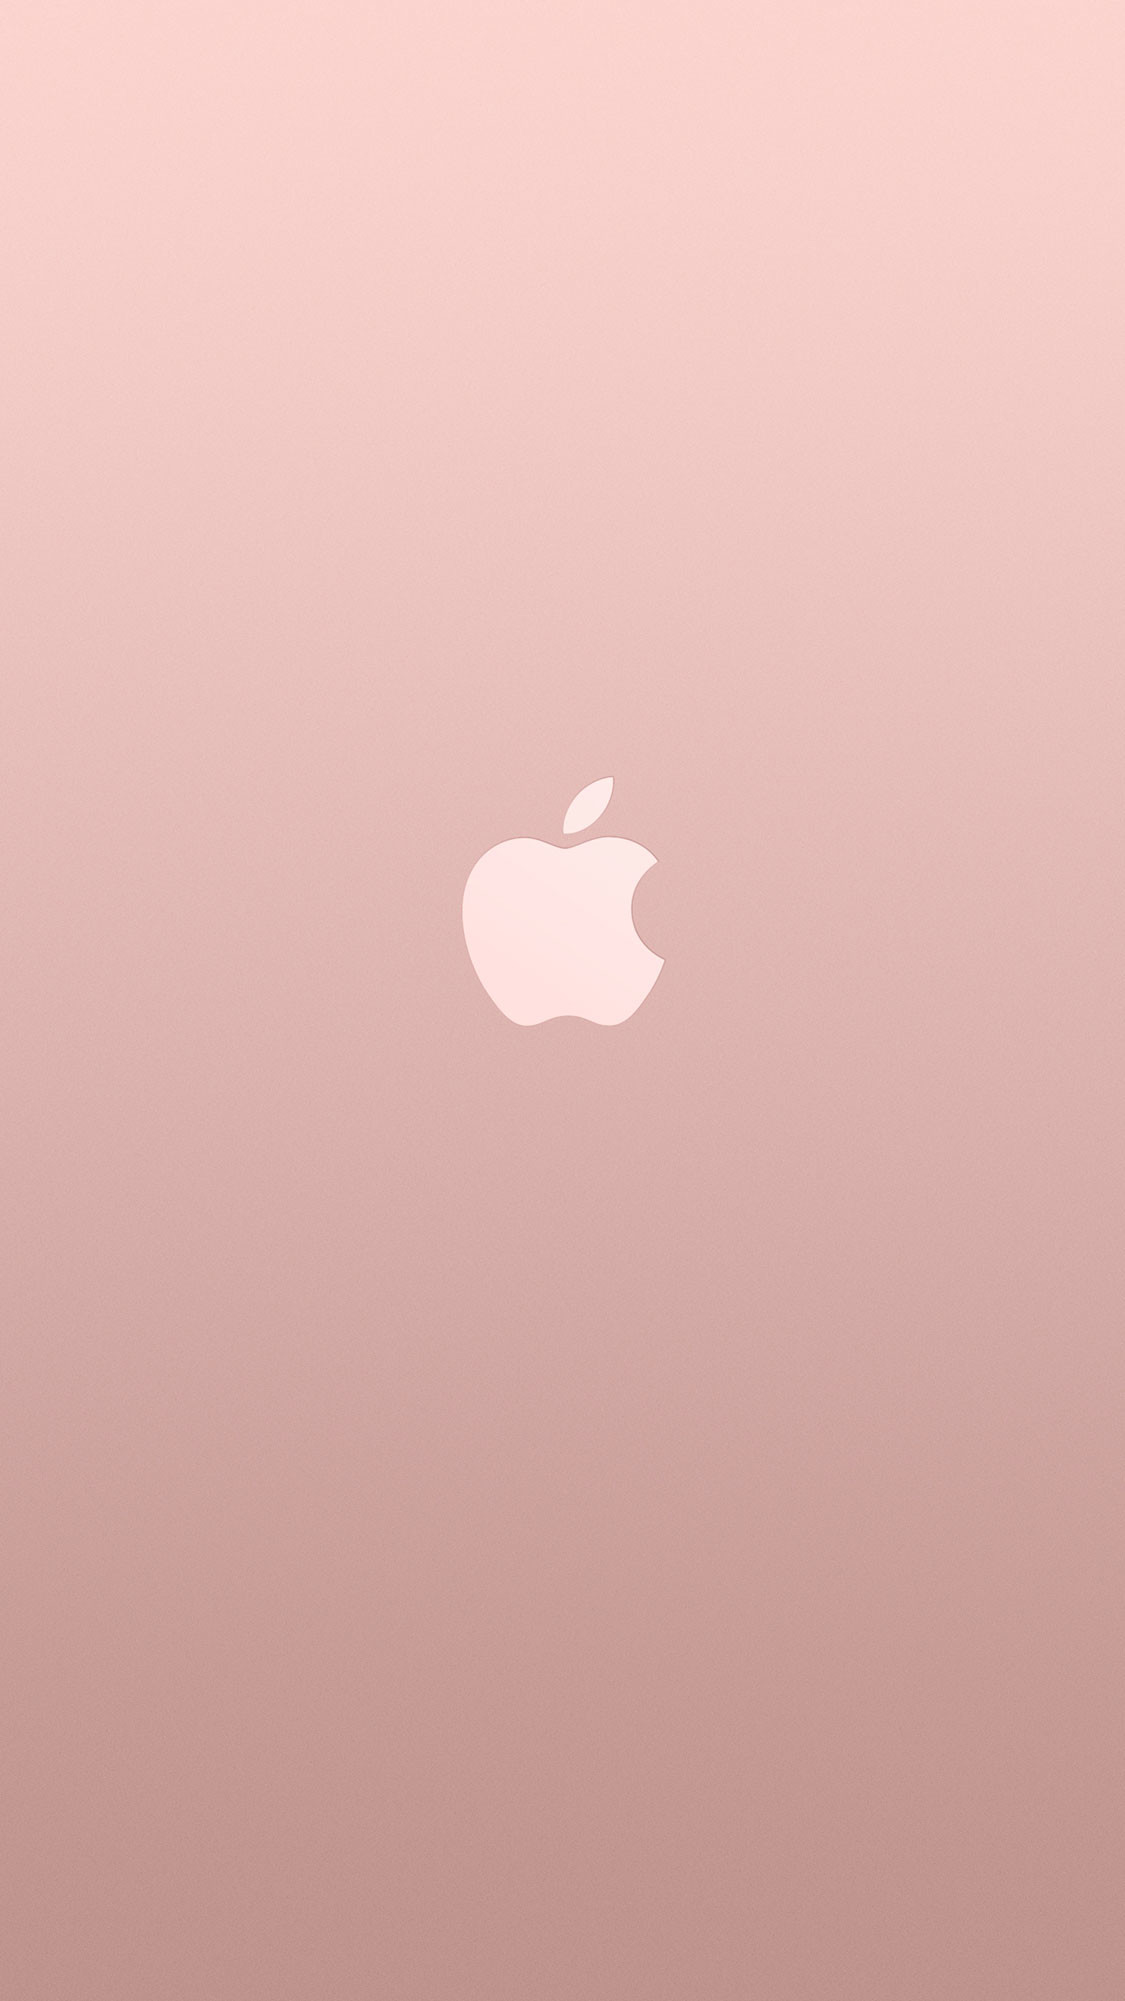 apple iphone logo hd gold. rose-gold-apple-iphone-6s-wallpaper- apple iphone logo hd gold